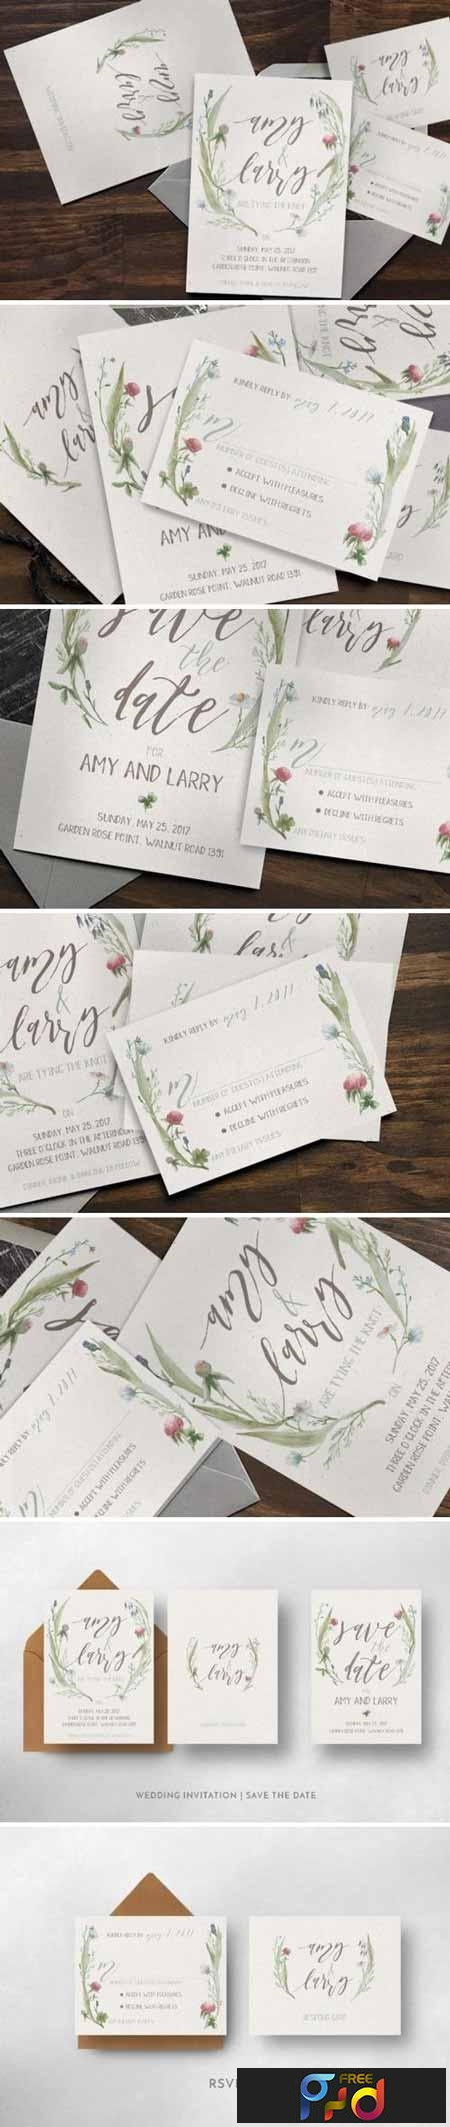 Watercolor Flower Wedding Invitation Suite 892941 1